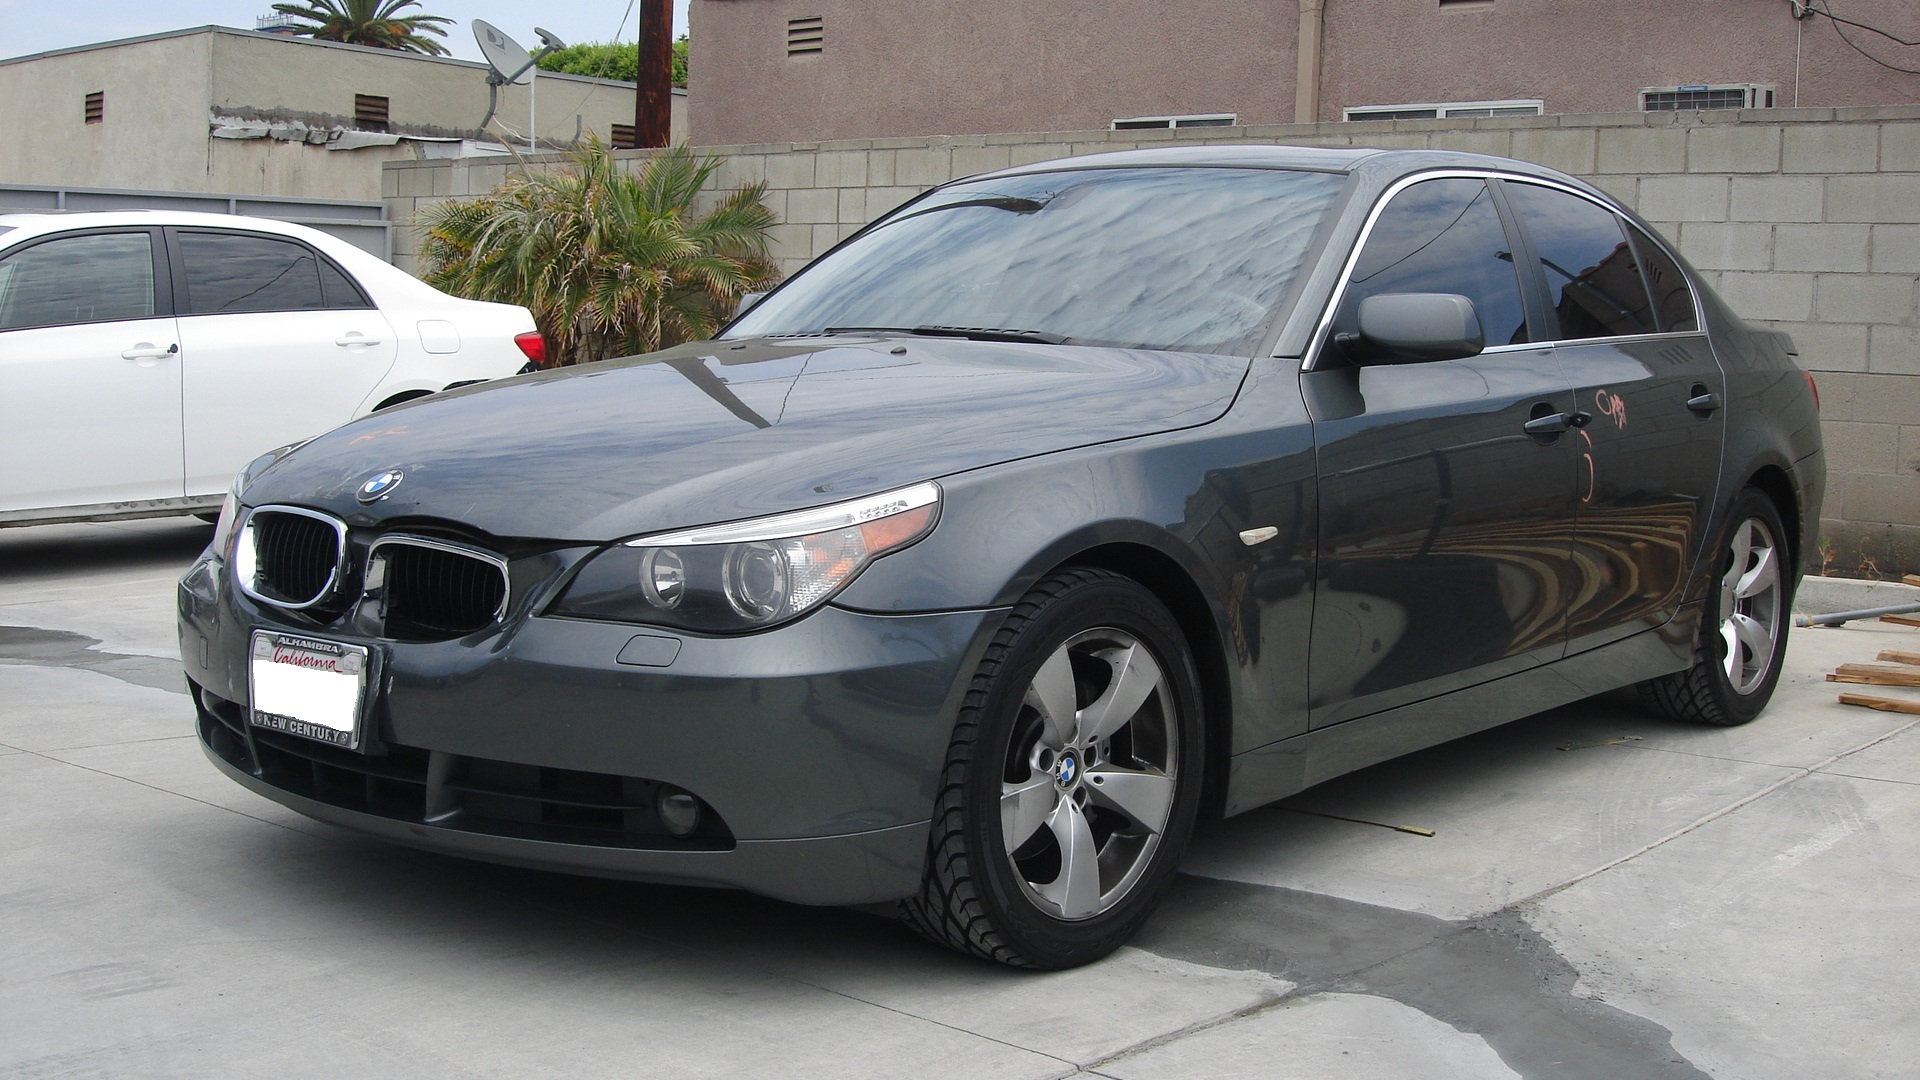 Bmw 530i 2006 Review Amazing Pictures And Images Look At The Car